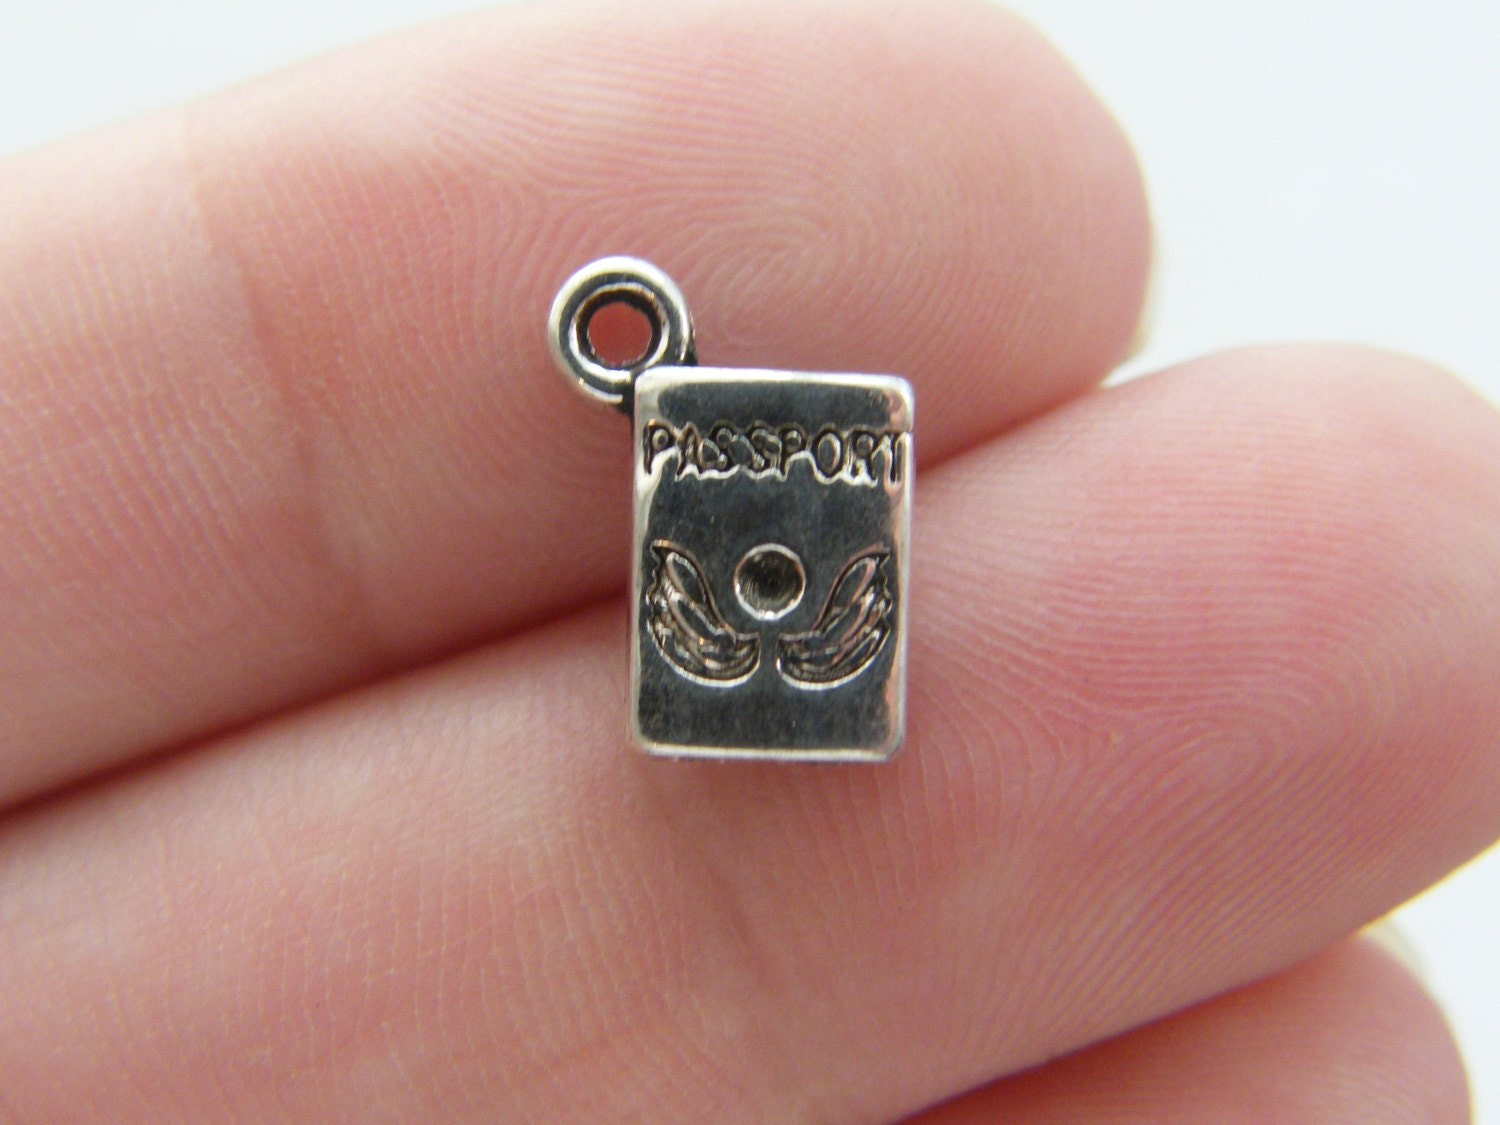 14 Passport charms antique silver tone WT56